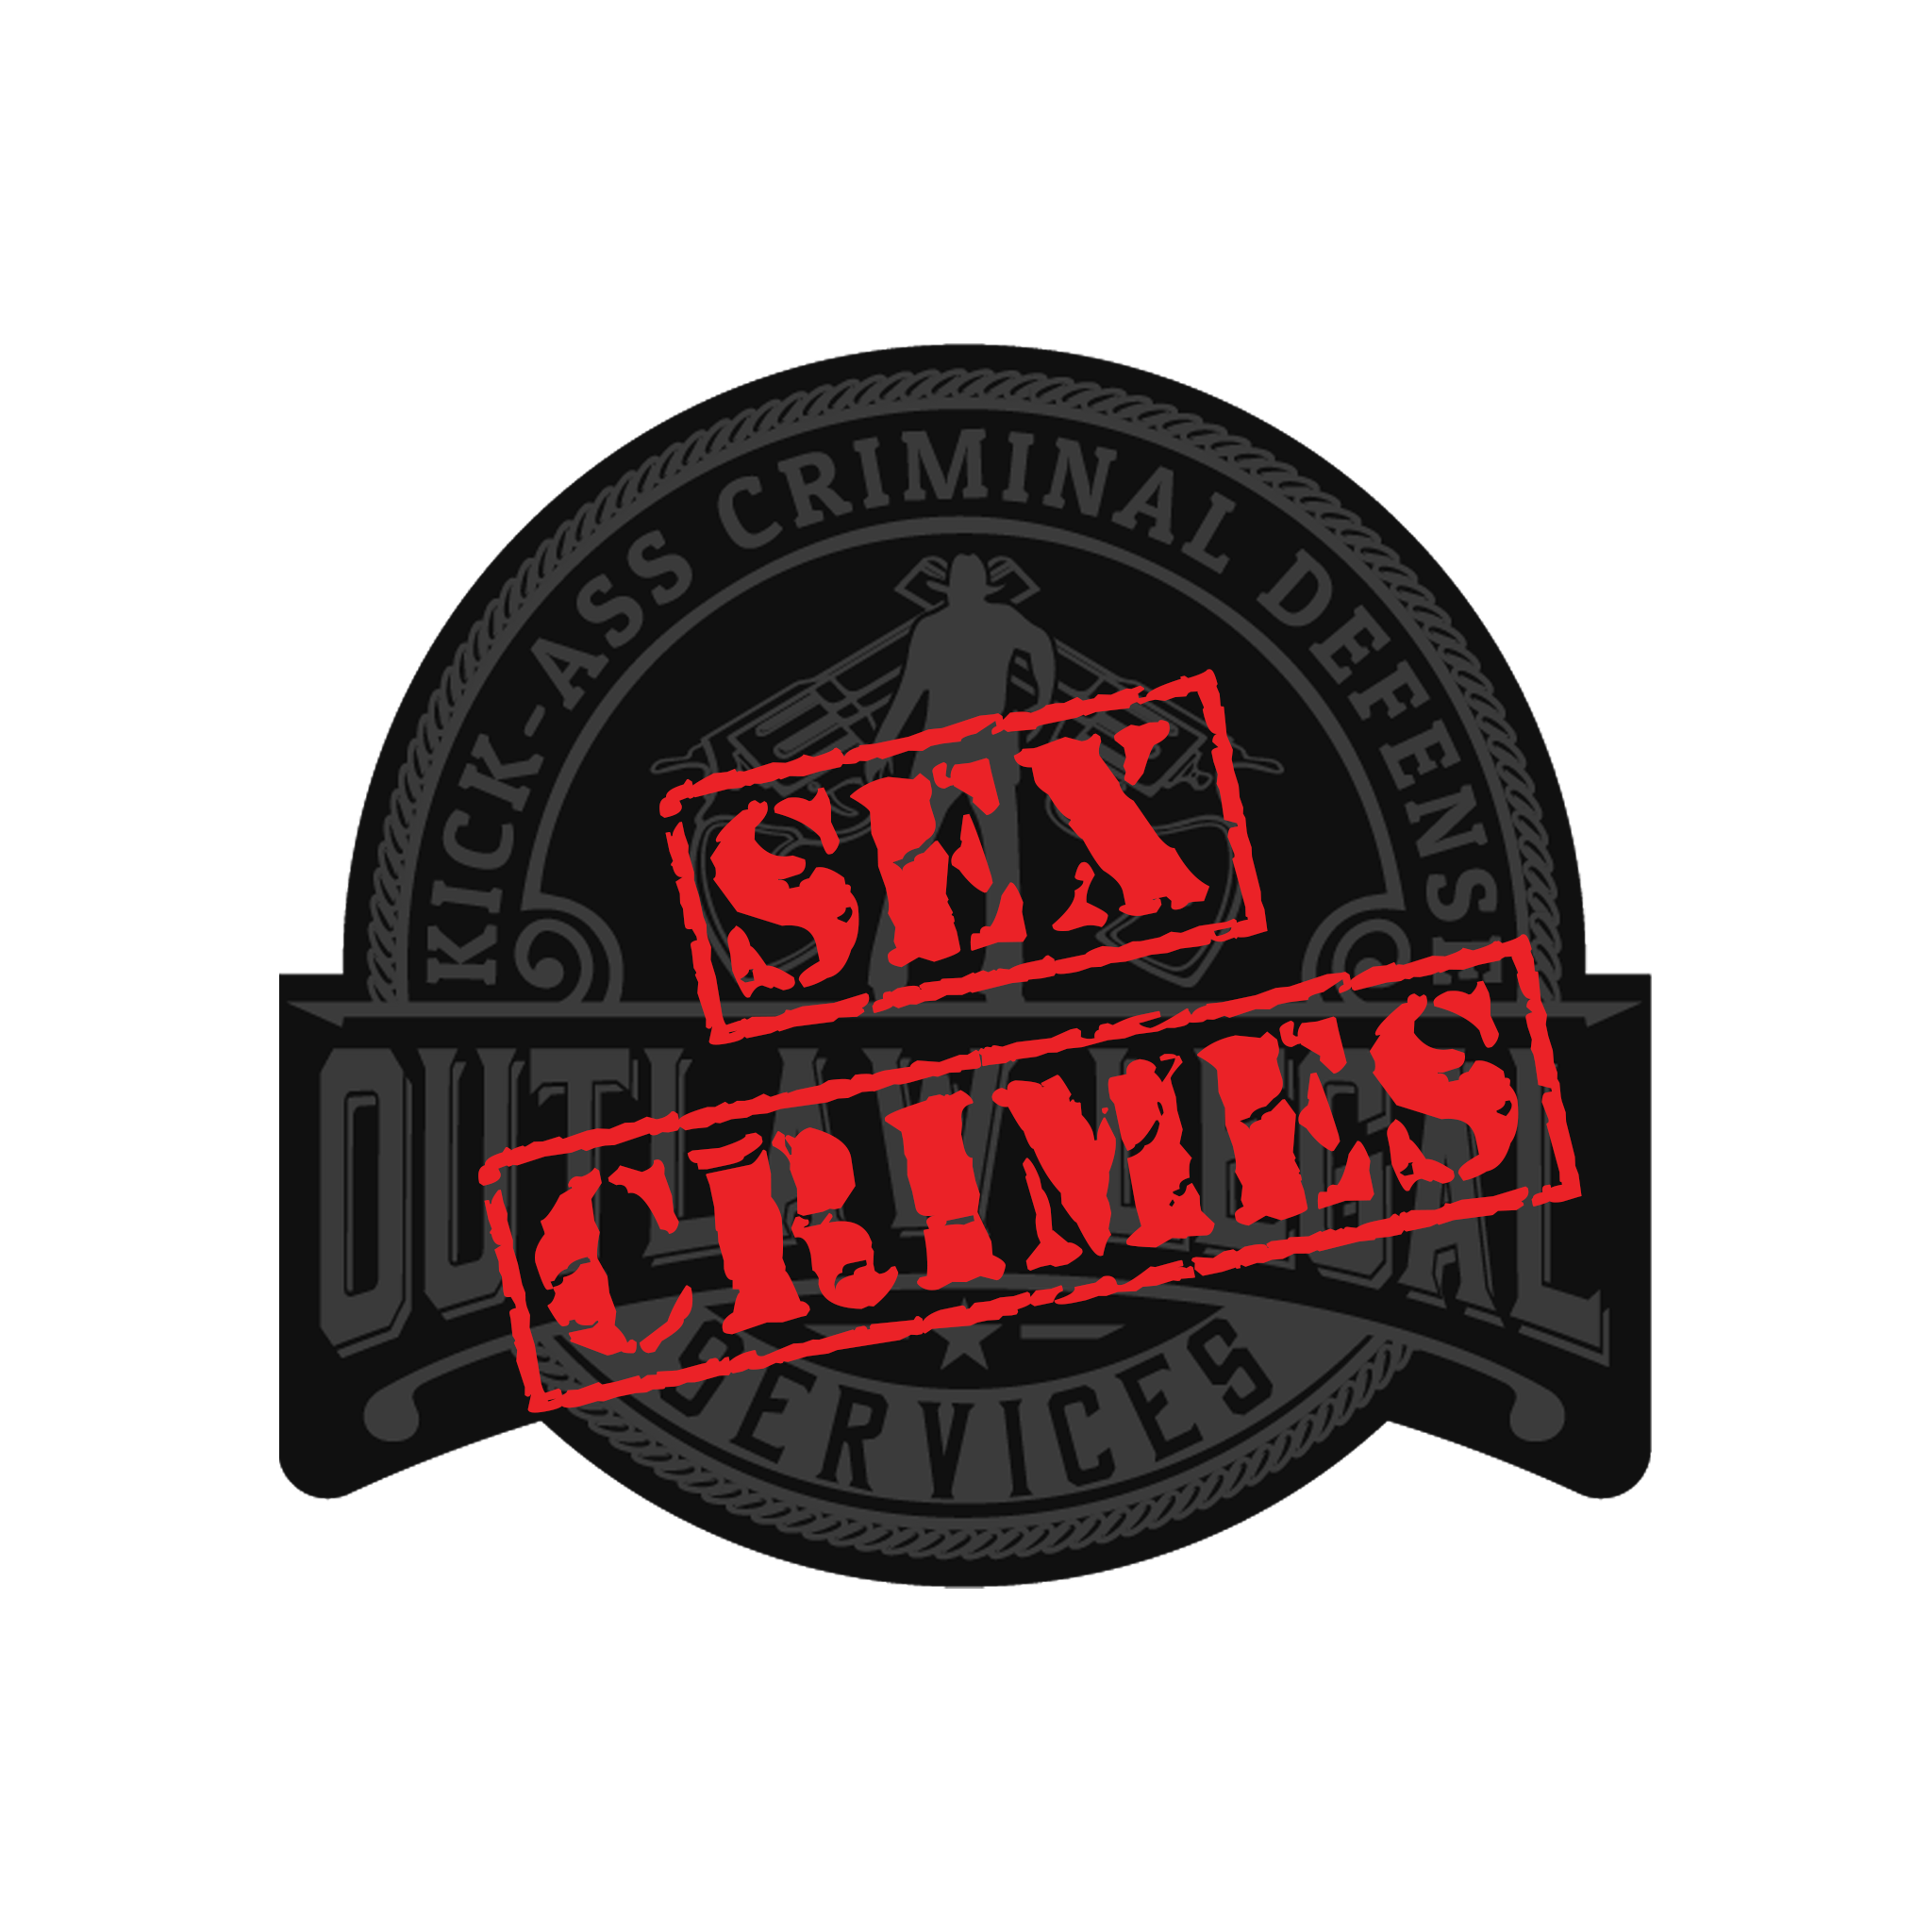 Sex crimes sexual assault rape restraining order protective order salt lake city provo ogden provo Criminal Defense Attorney Lawyer Utah west valley